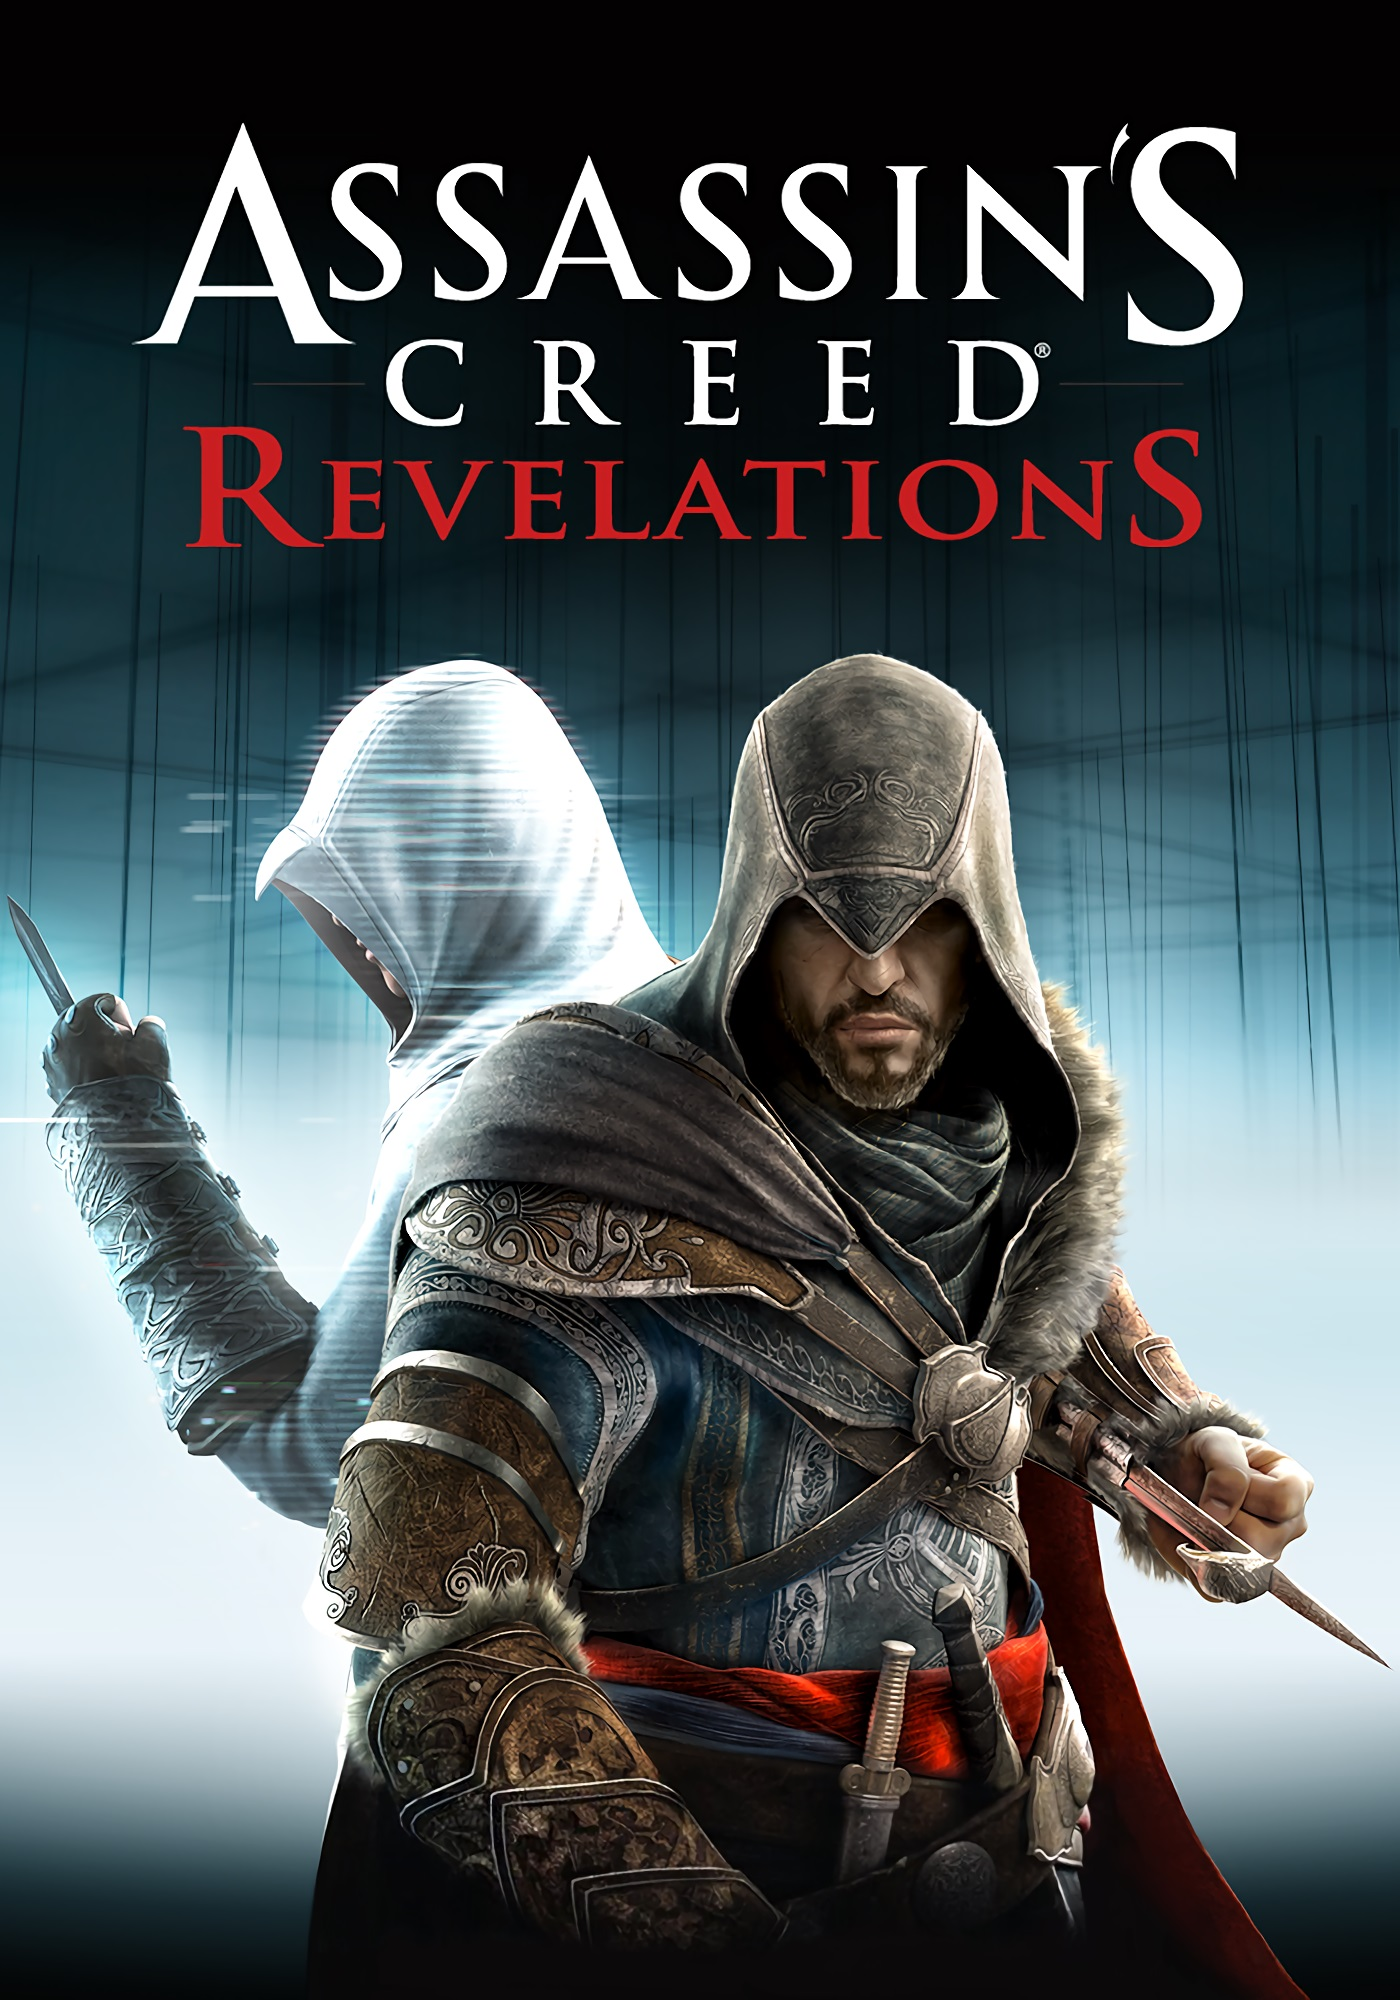 Eclectic Thoughts » Assassin's Creed Revelations